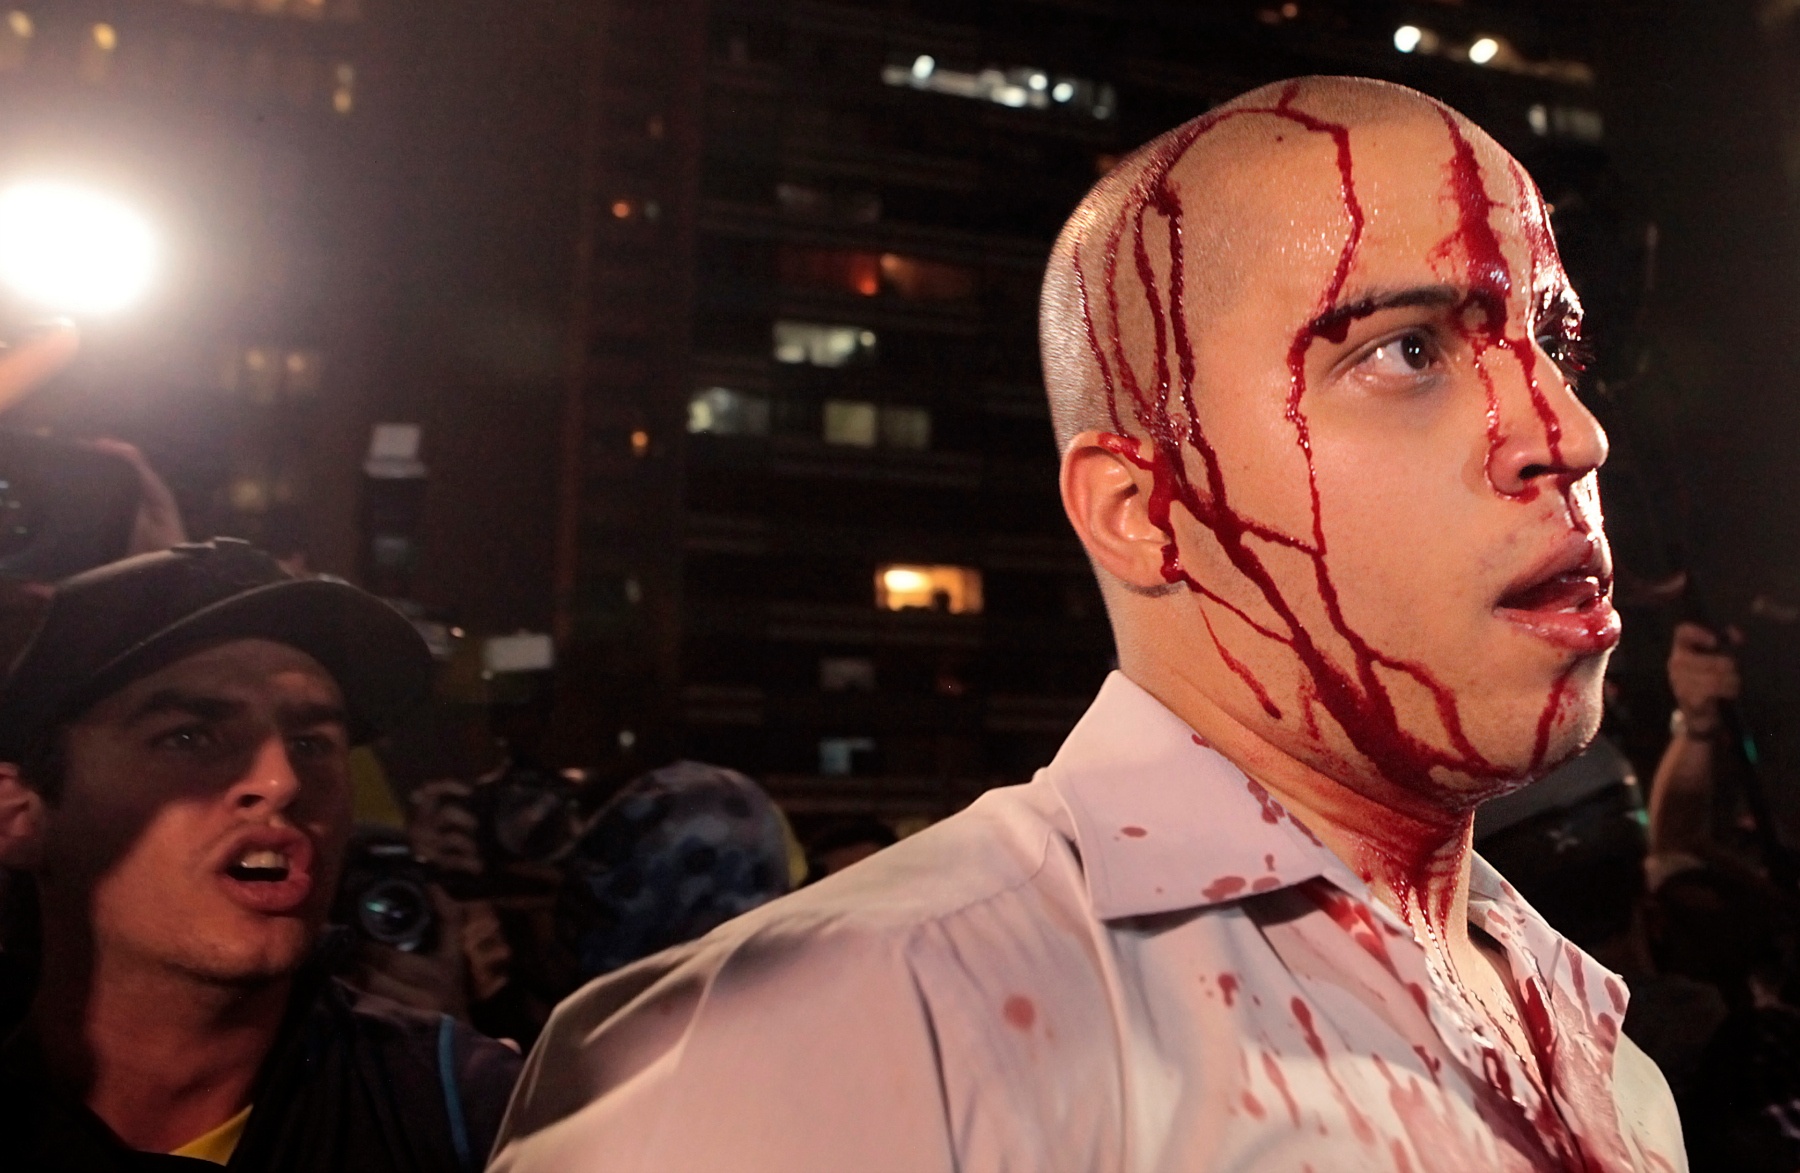 Bloodied protester in Brazil